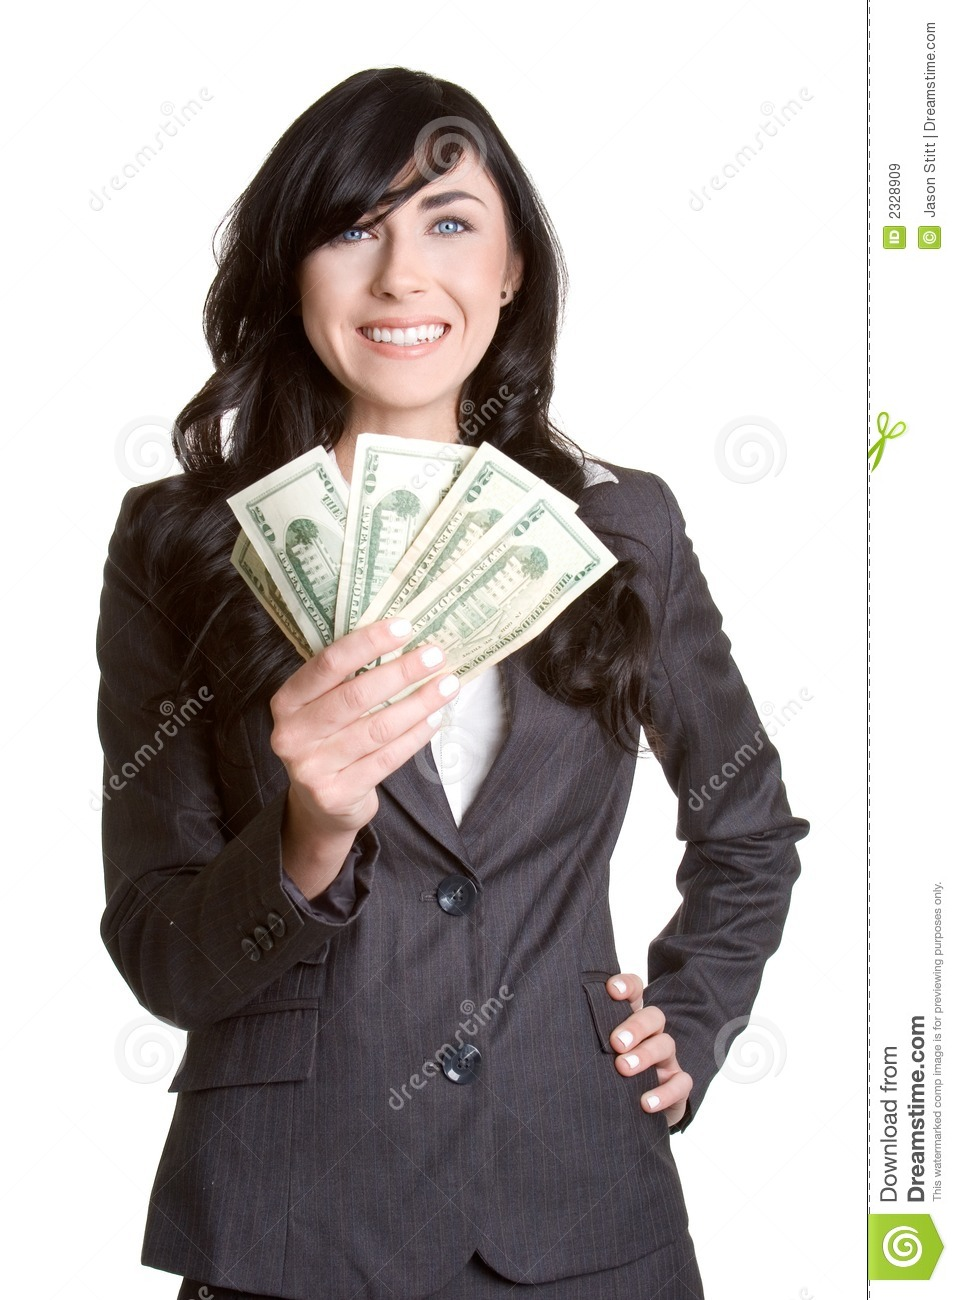 Woman Holding Money Royalty Free Stock Images - Image: 2328909